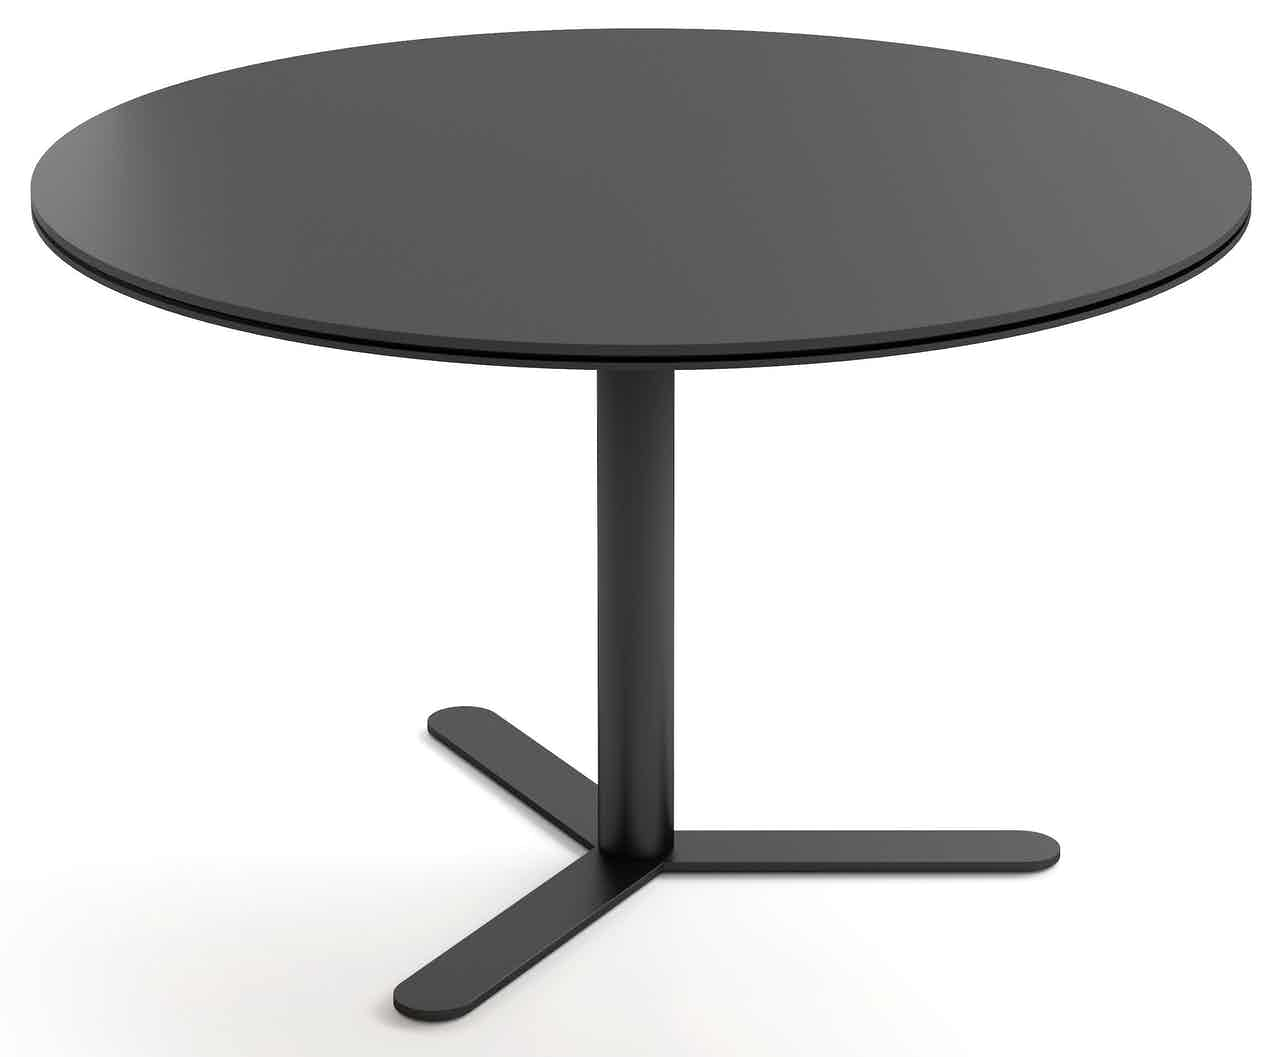 Viccarbe-round-aspa-table-haute-living